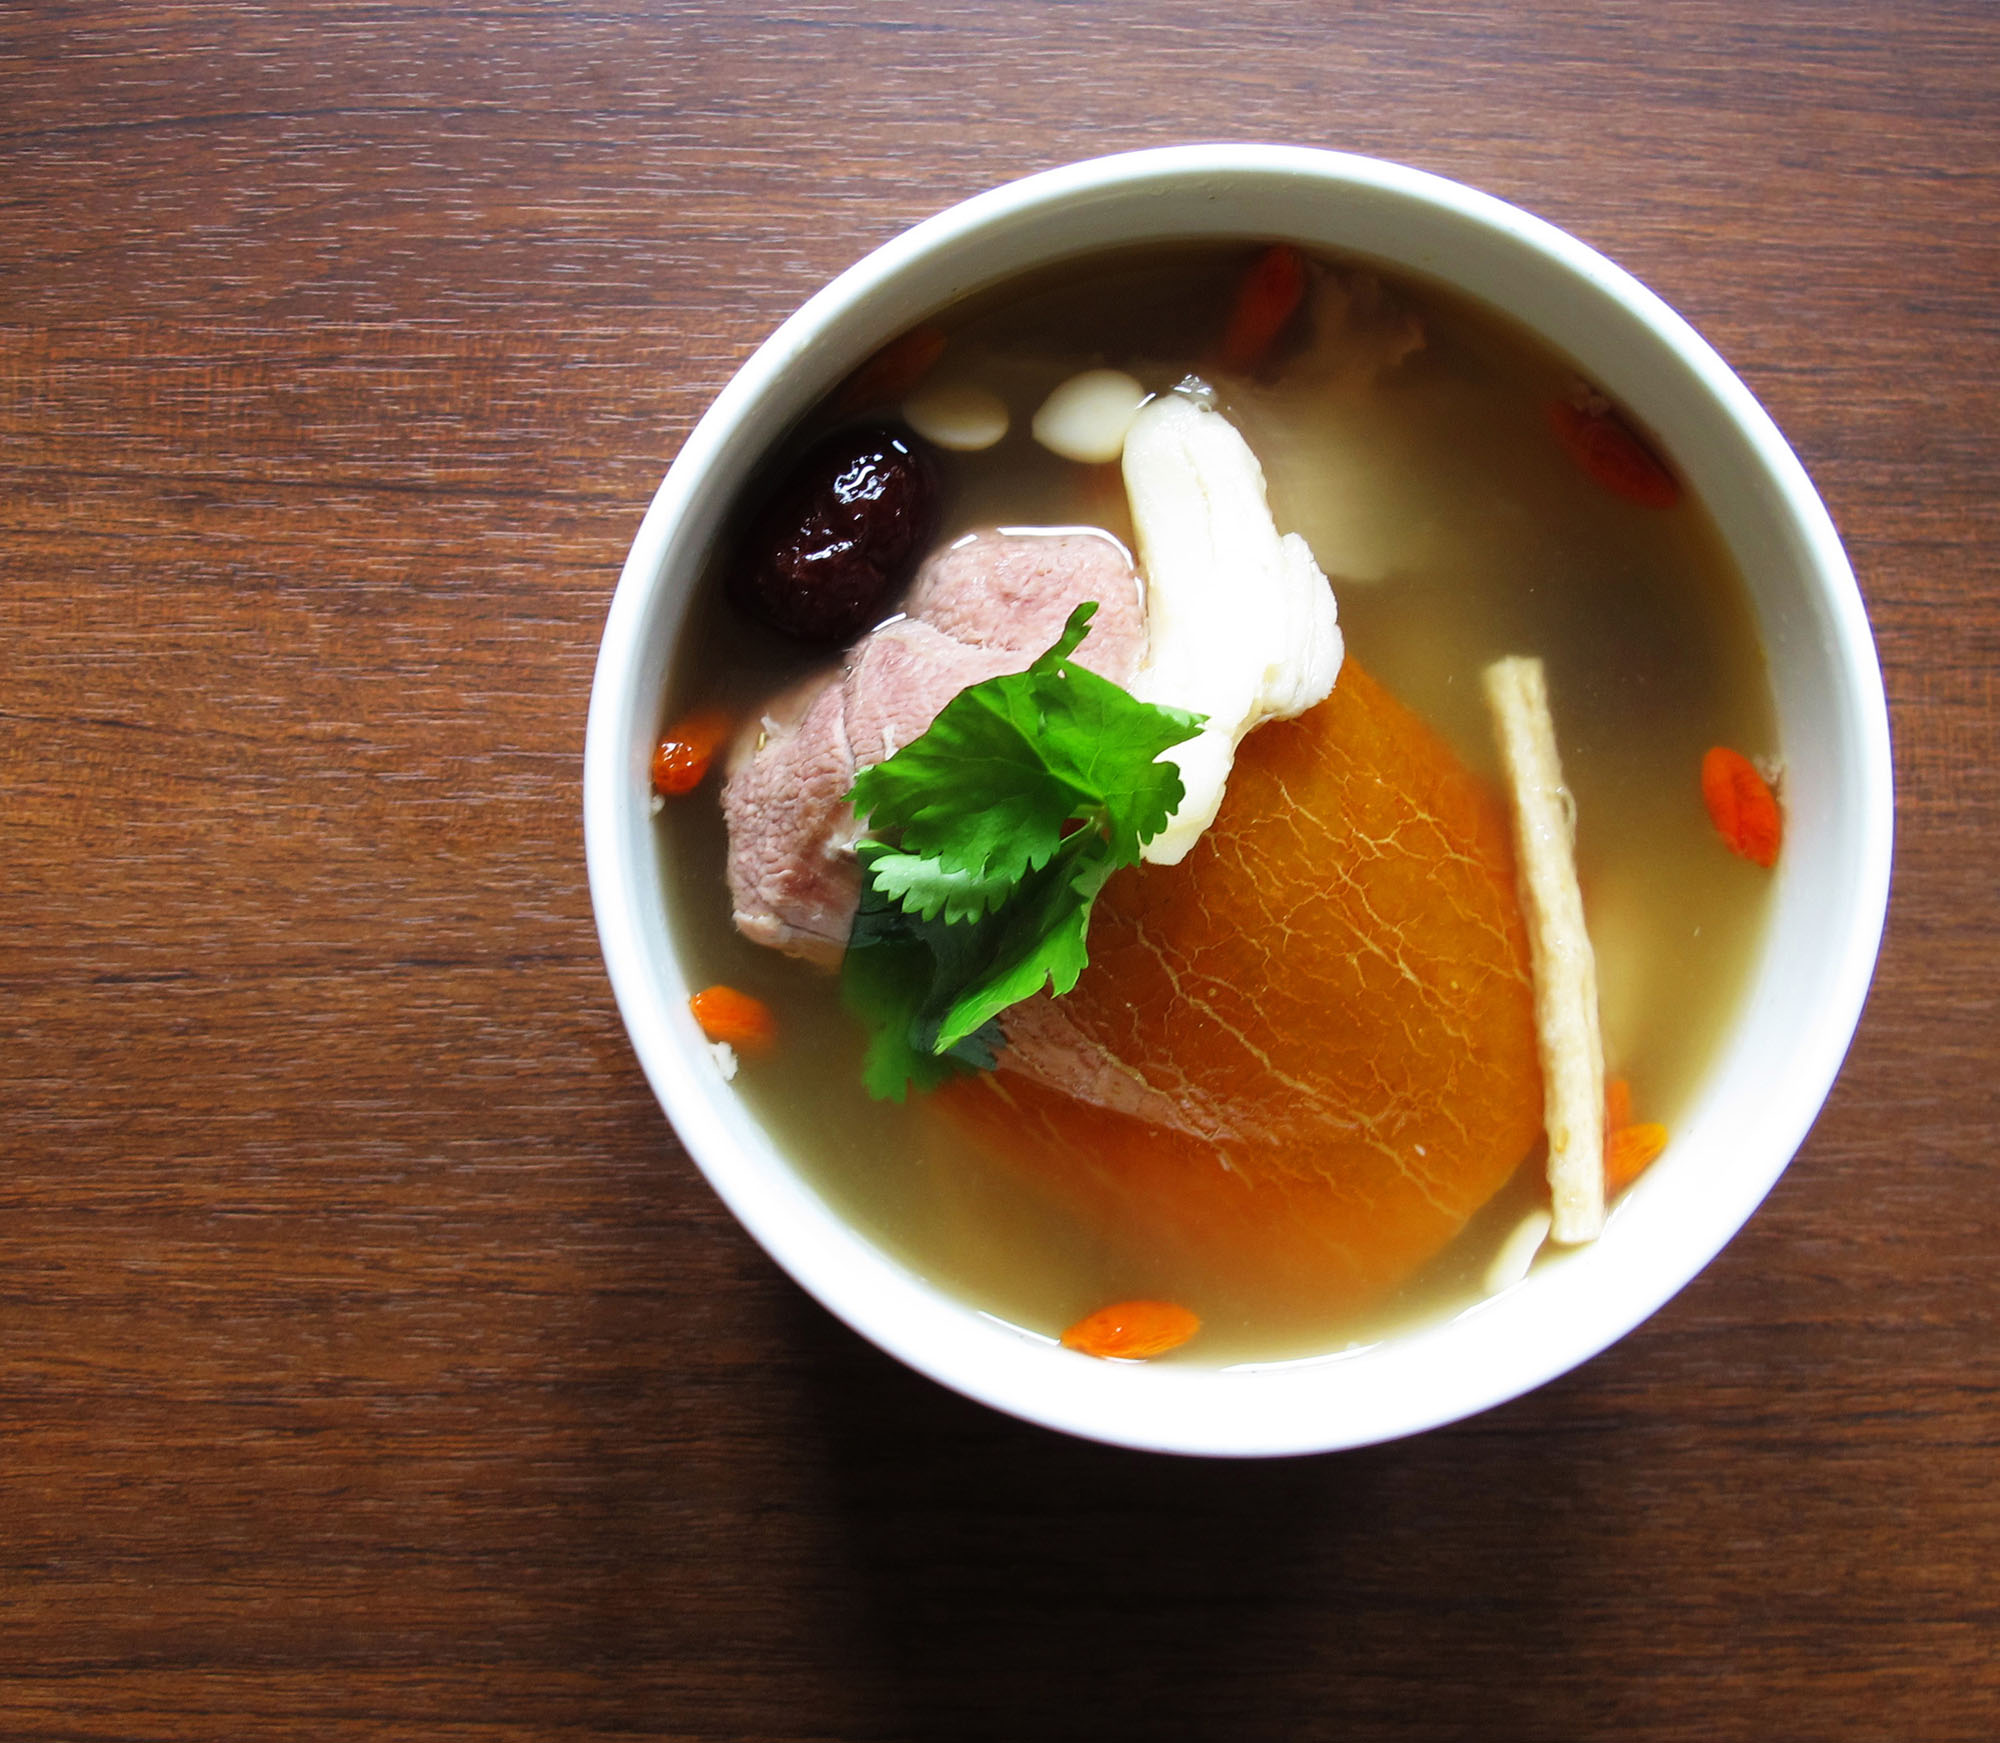 Old Cucumber with Duck Soup